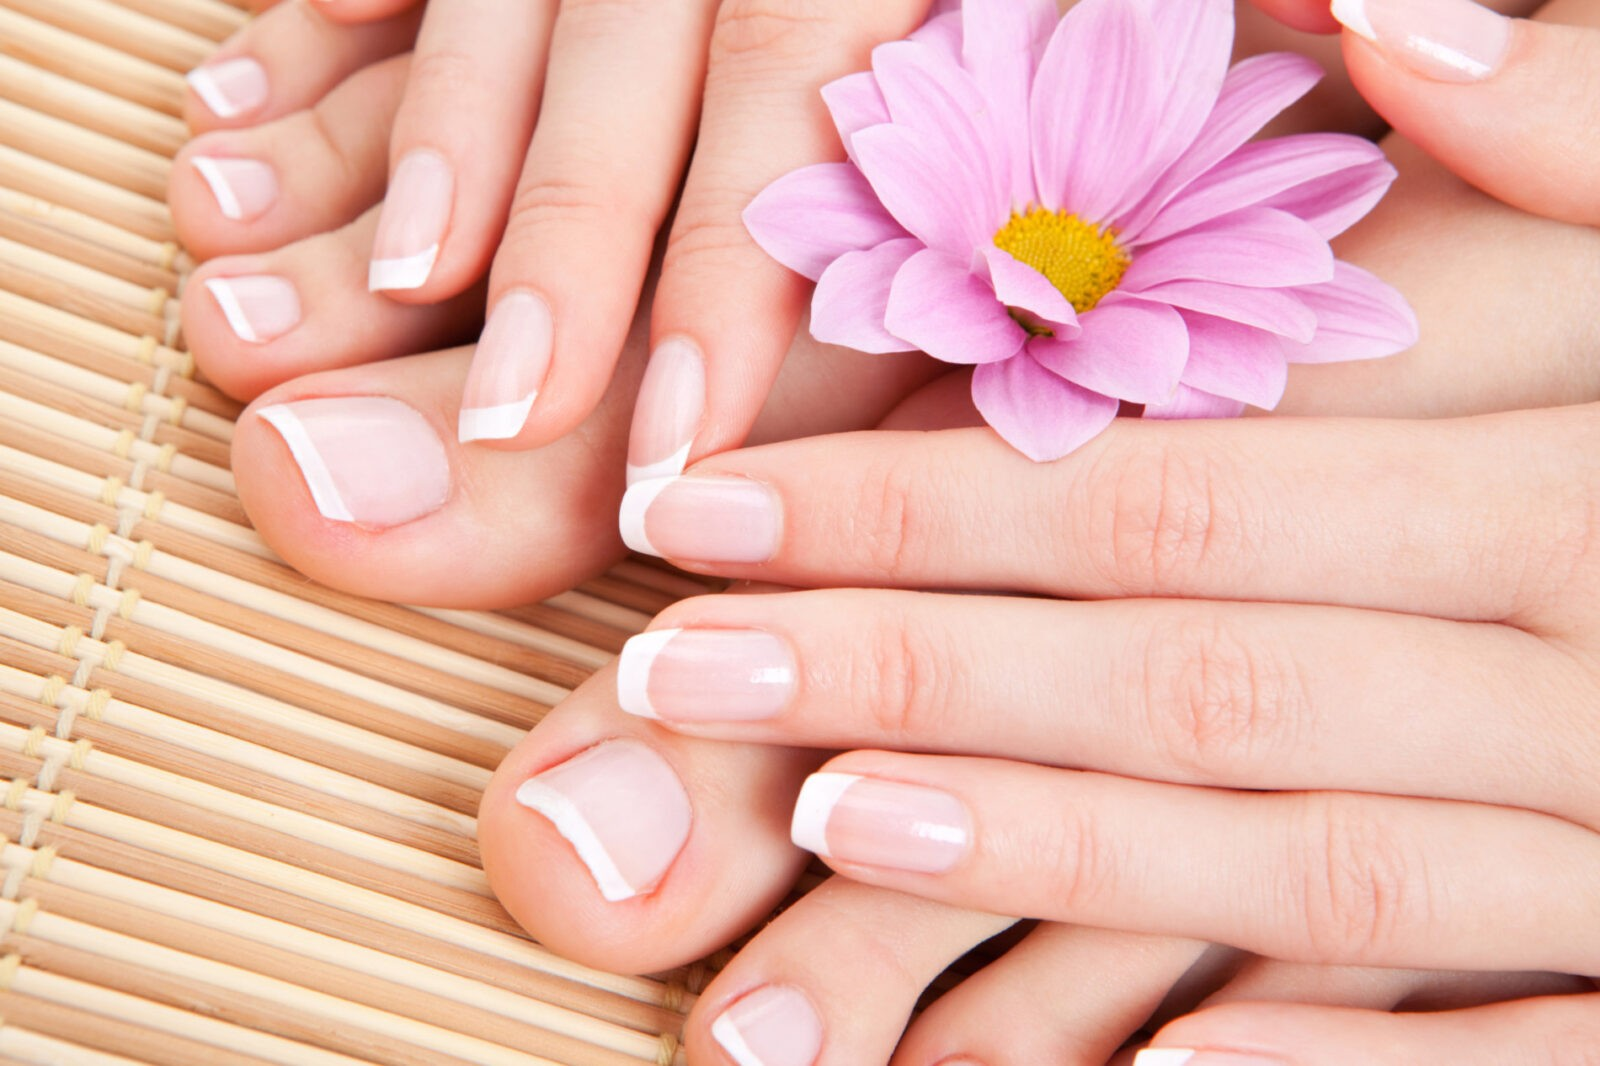 Sterling Nails & Beauty located in Sterling, VA is a local nails salon that offers quality services including acrylic nails, spa pedicure, gel manicure, facial and waxing. Welcome!